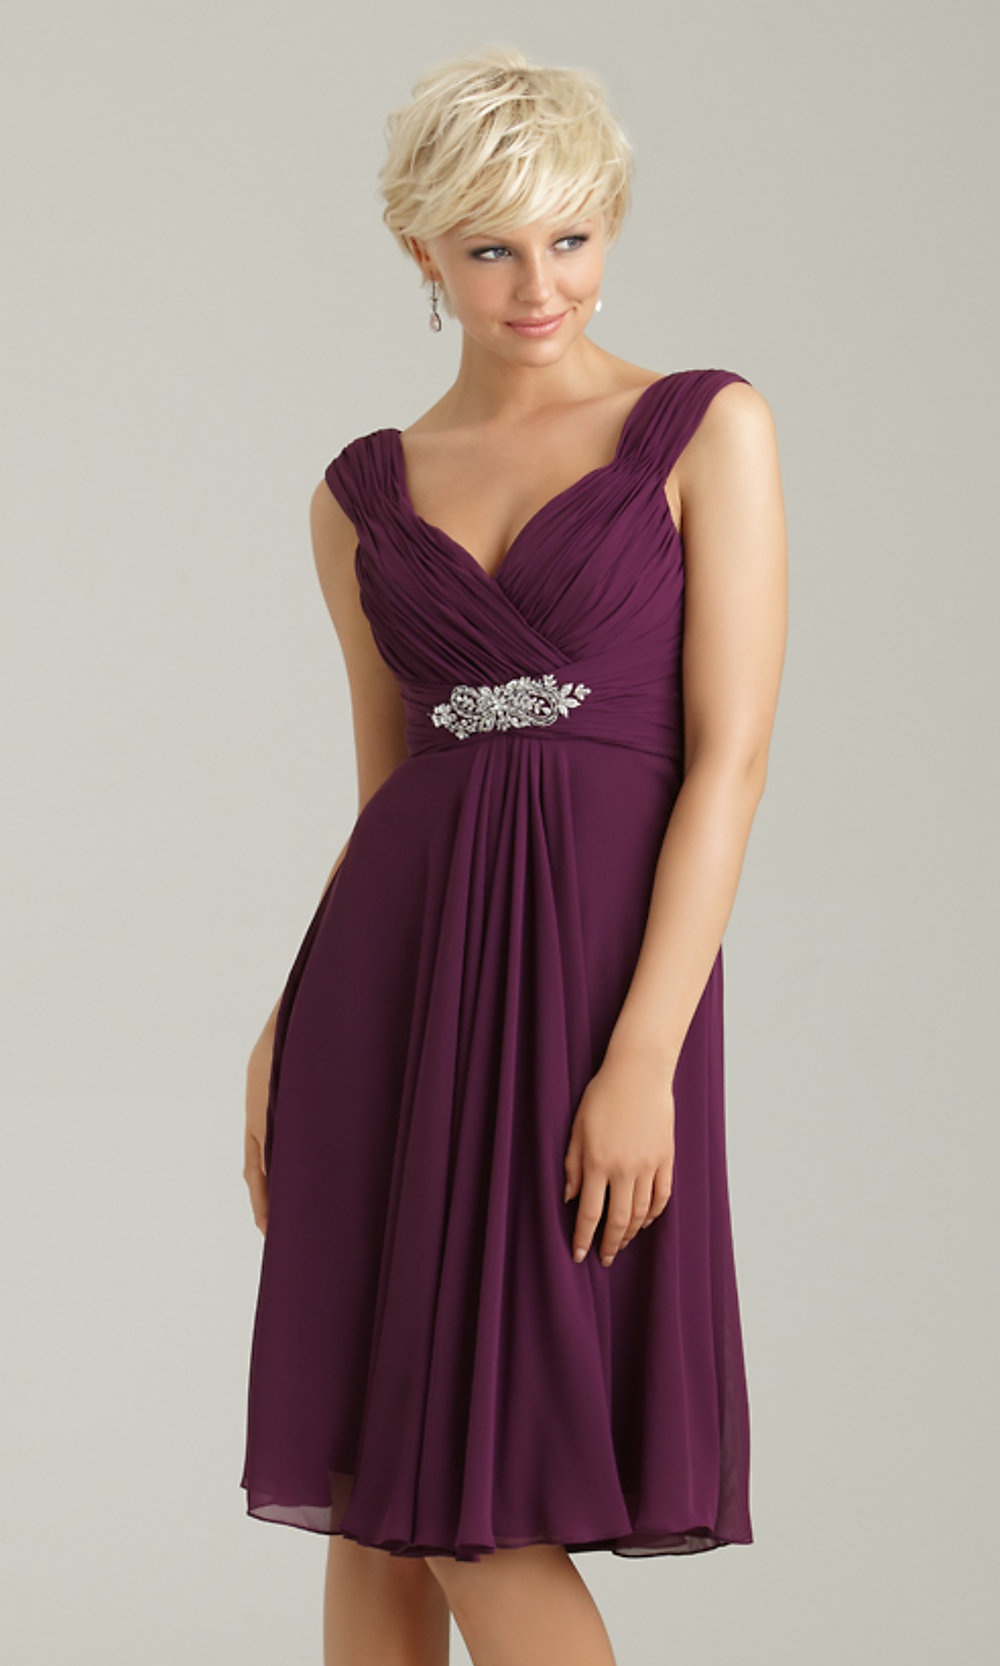 Lo lo lord and taylor party dresses - Loved